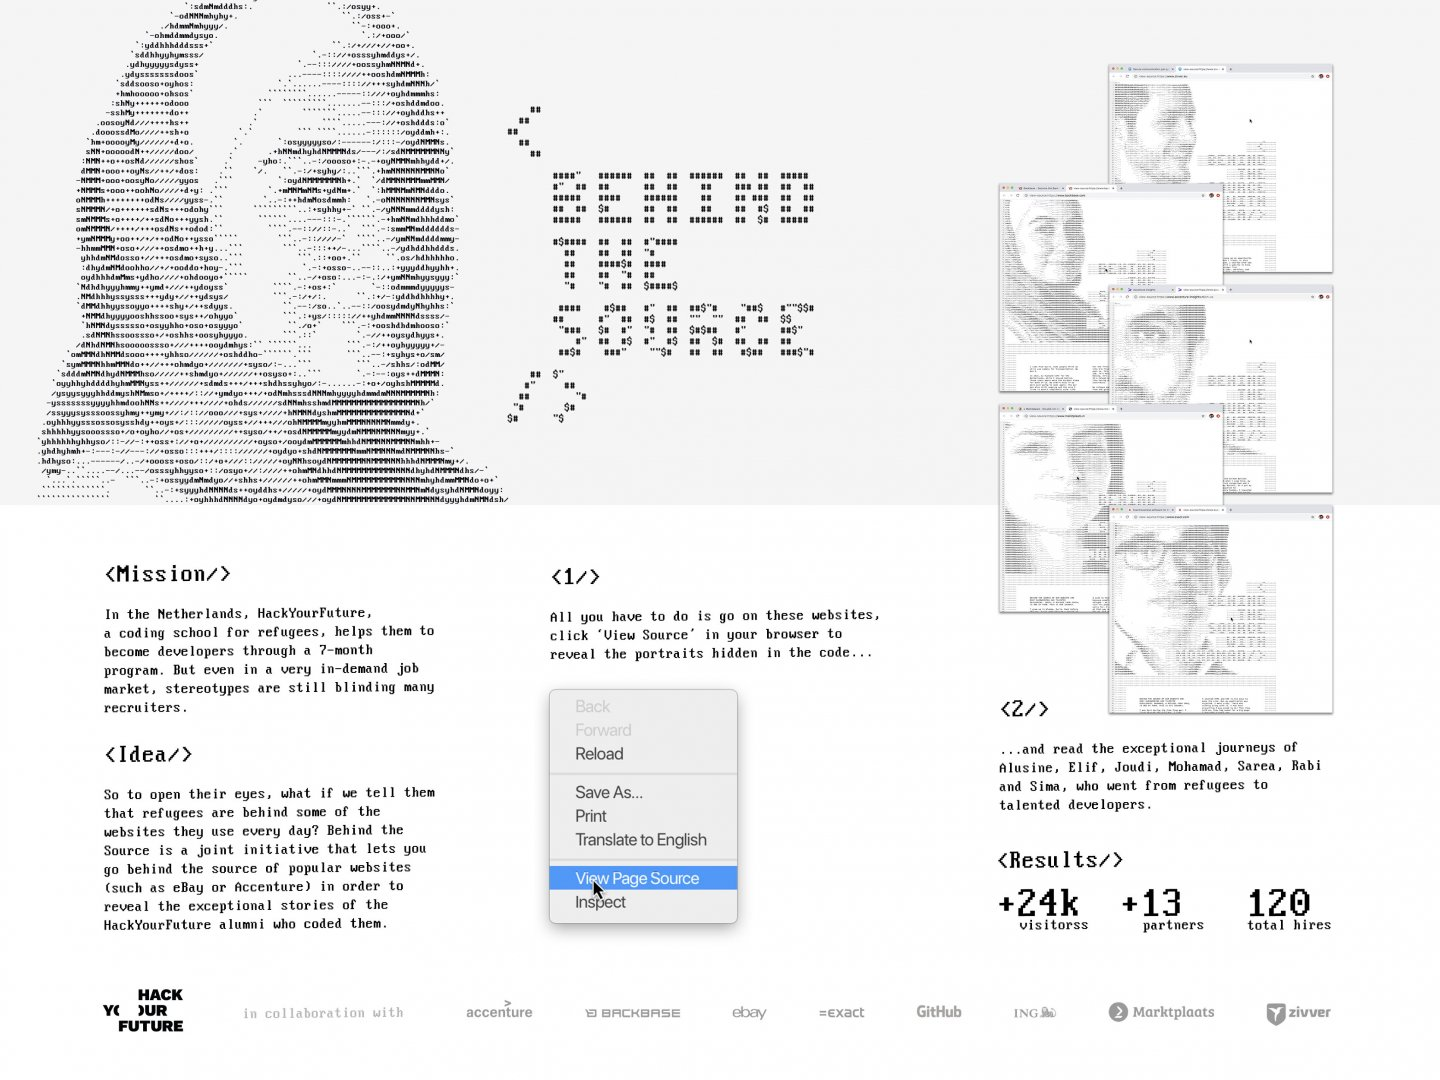 HackYourFuture - Behind the Source Thumbnail